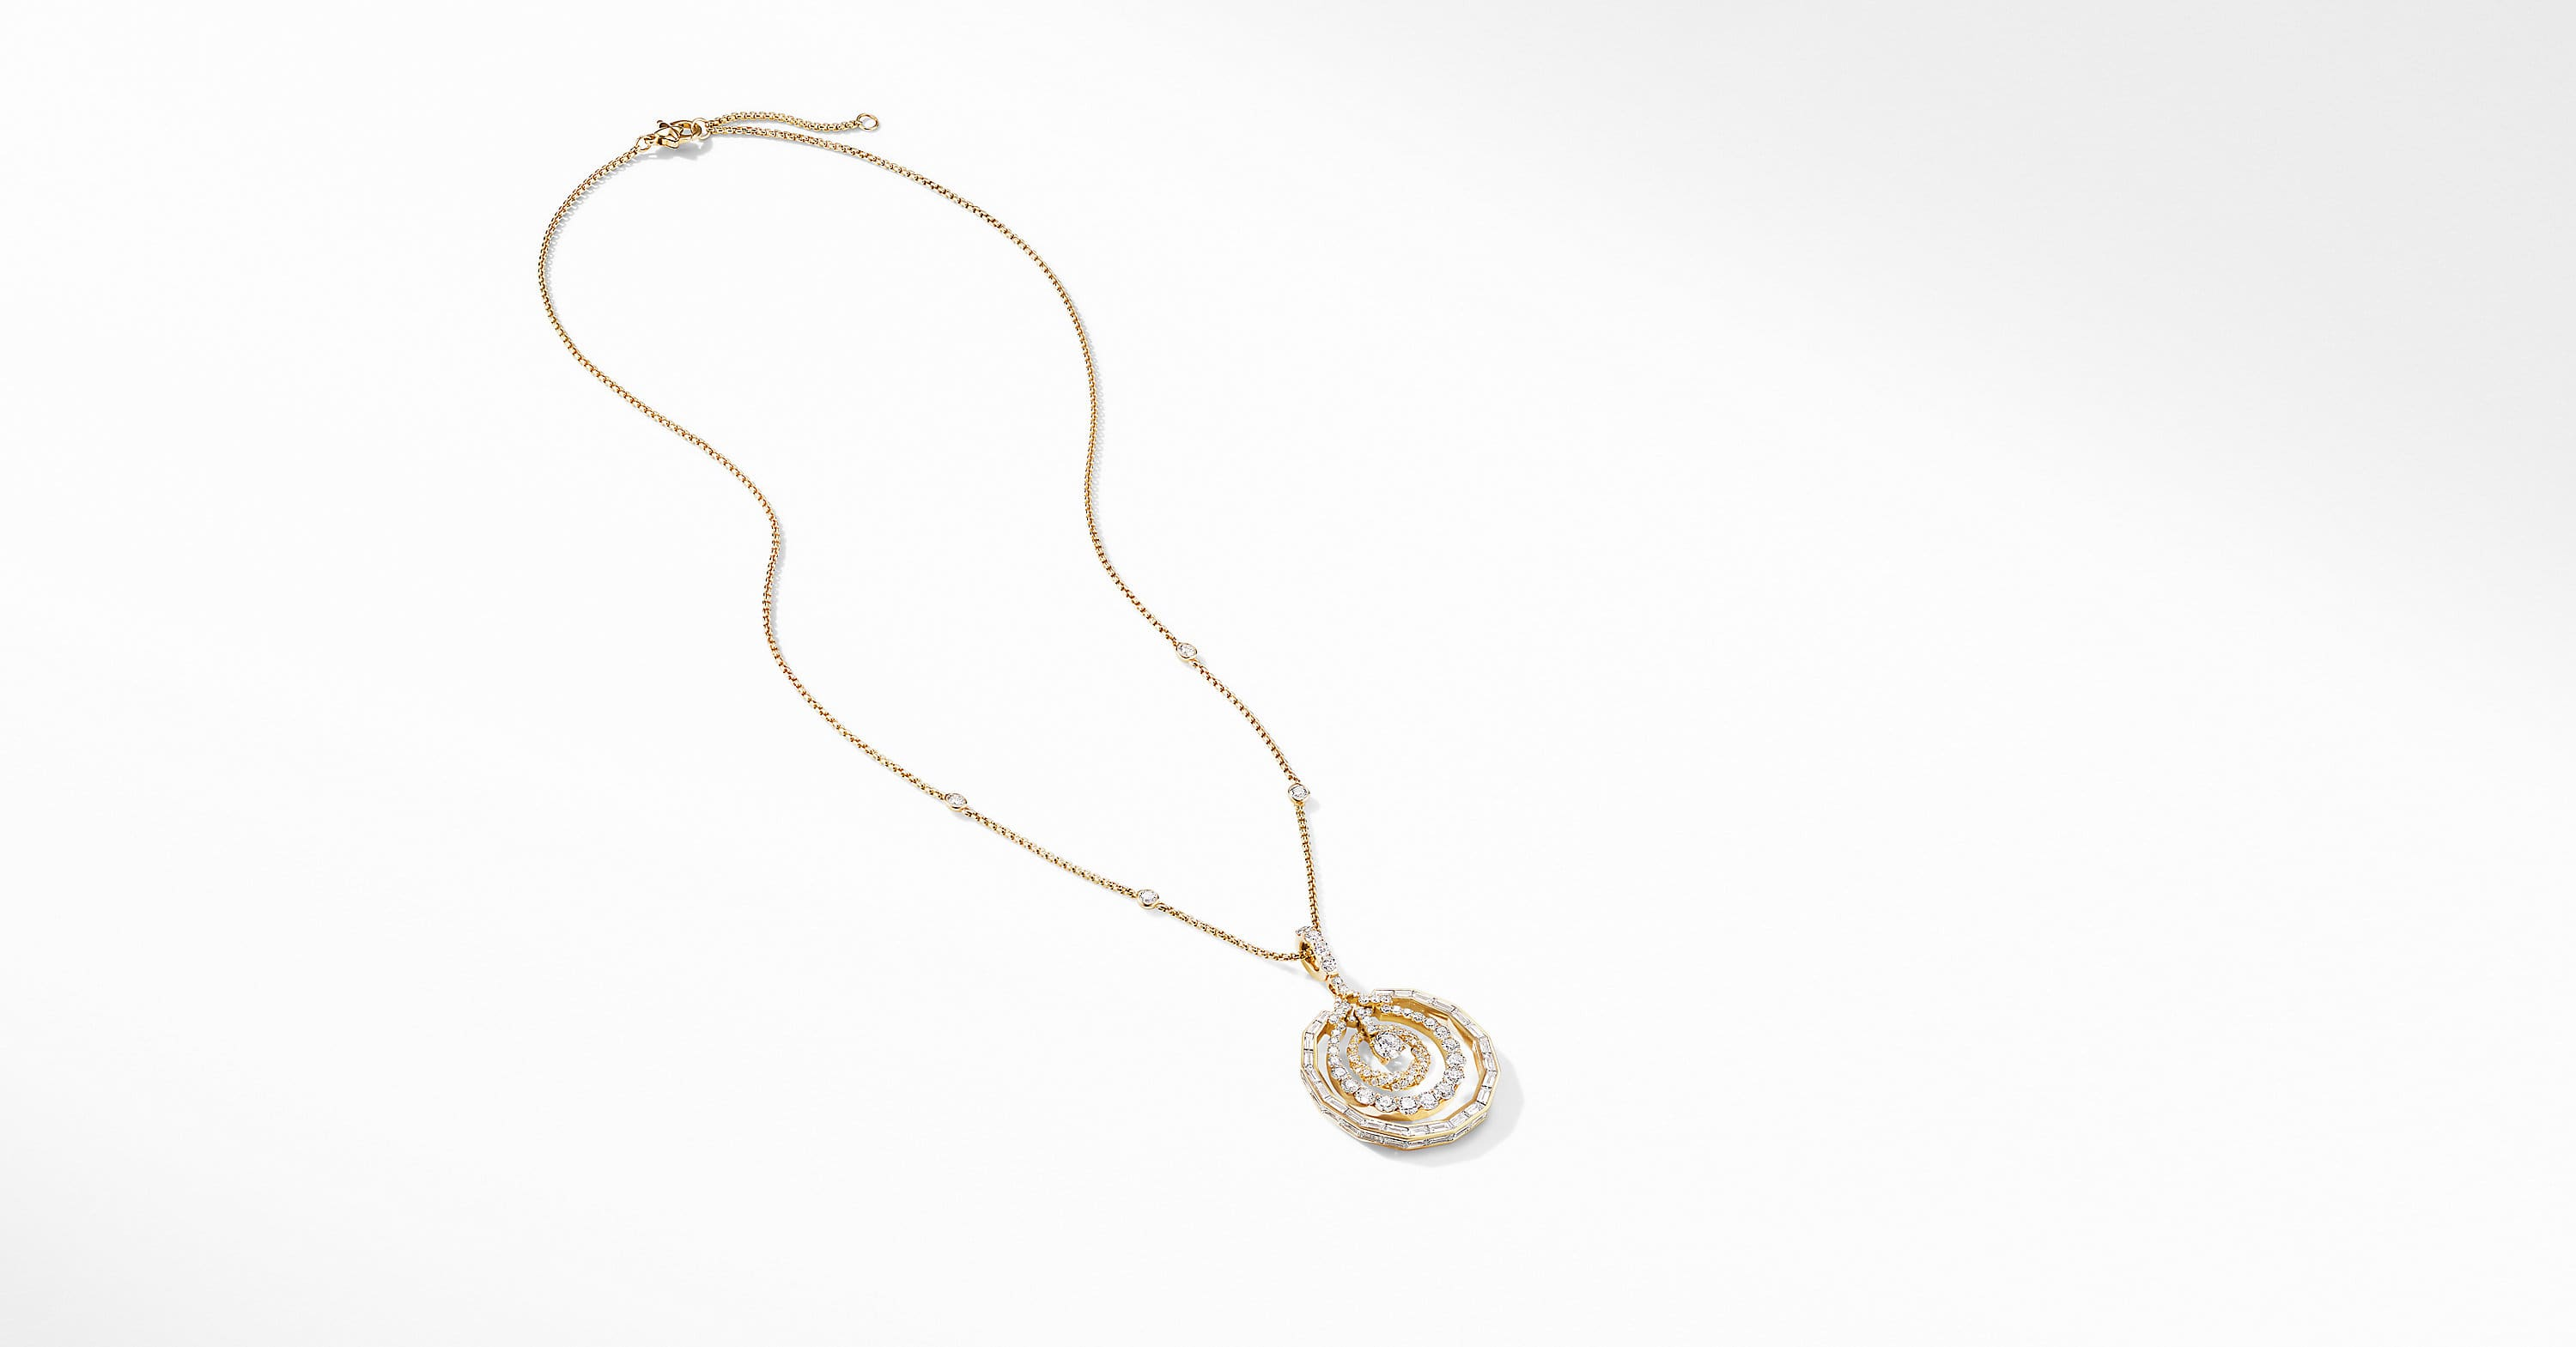 Stax Mini Pendant Necklace in Yellow Gold with Diamonds